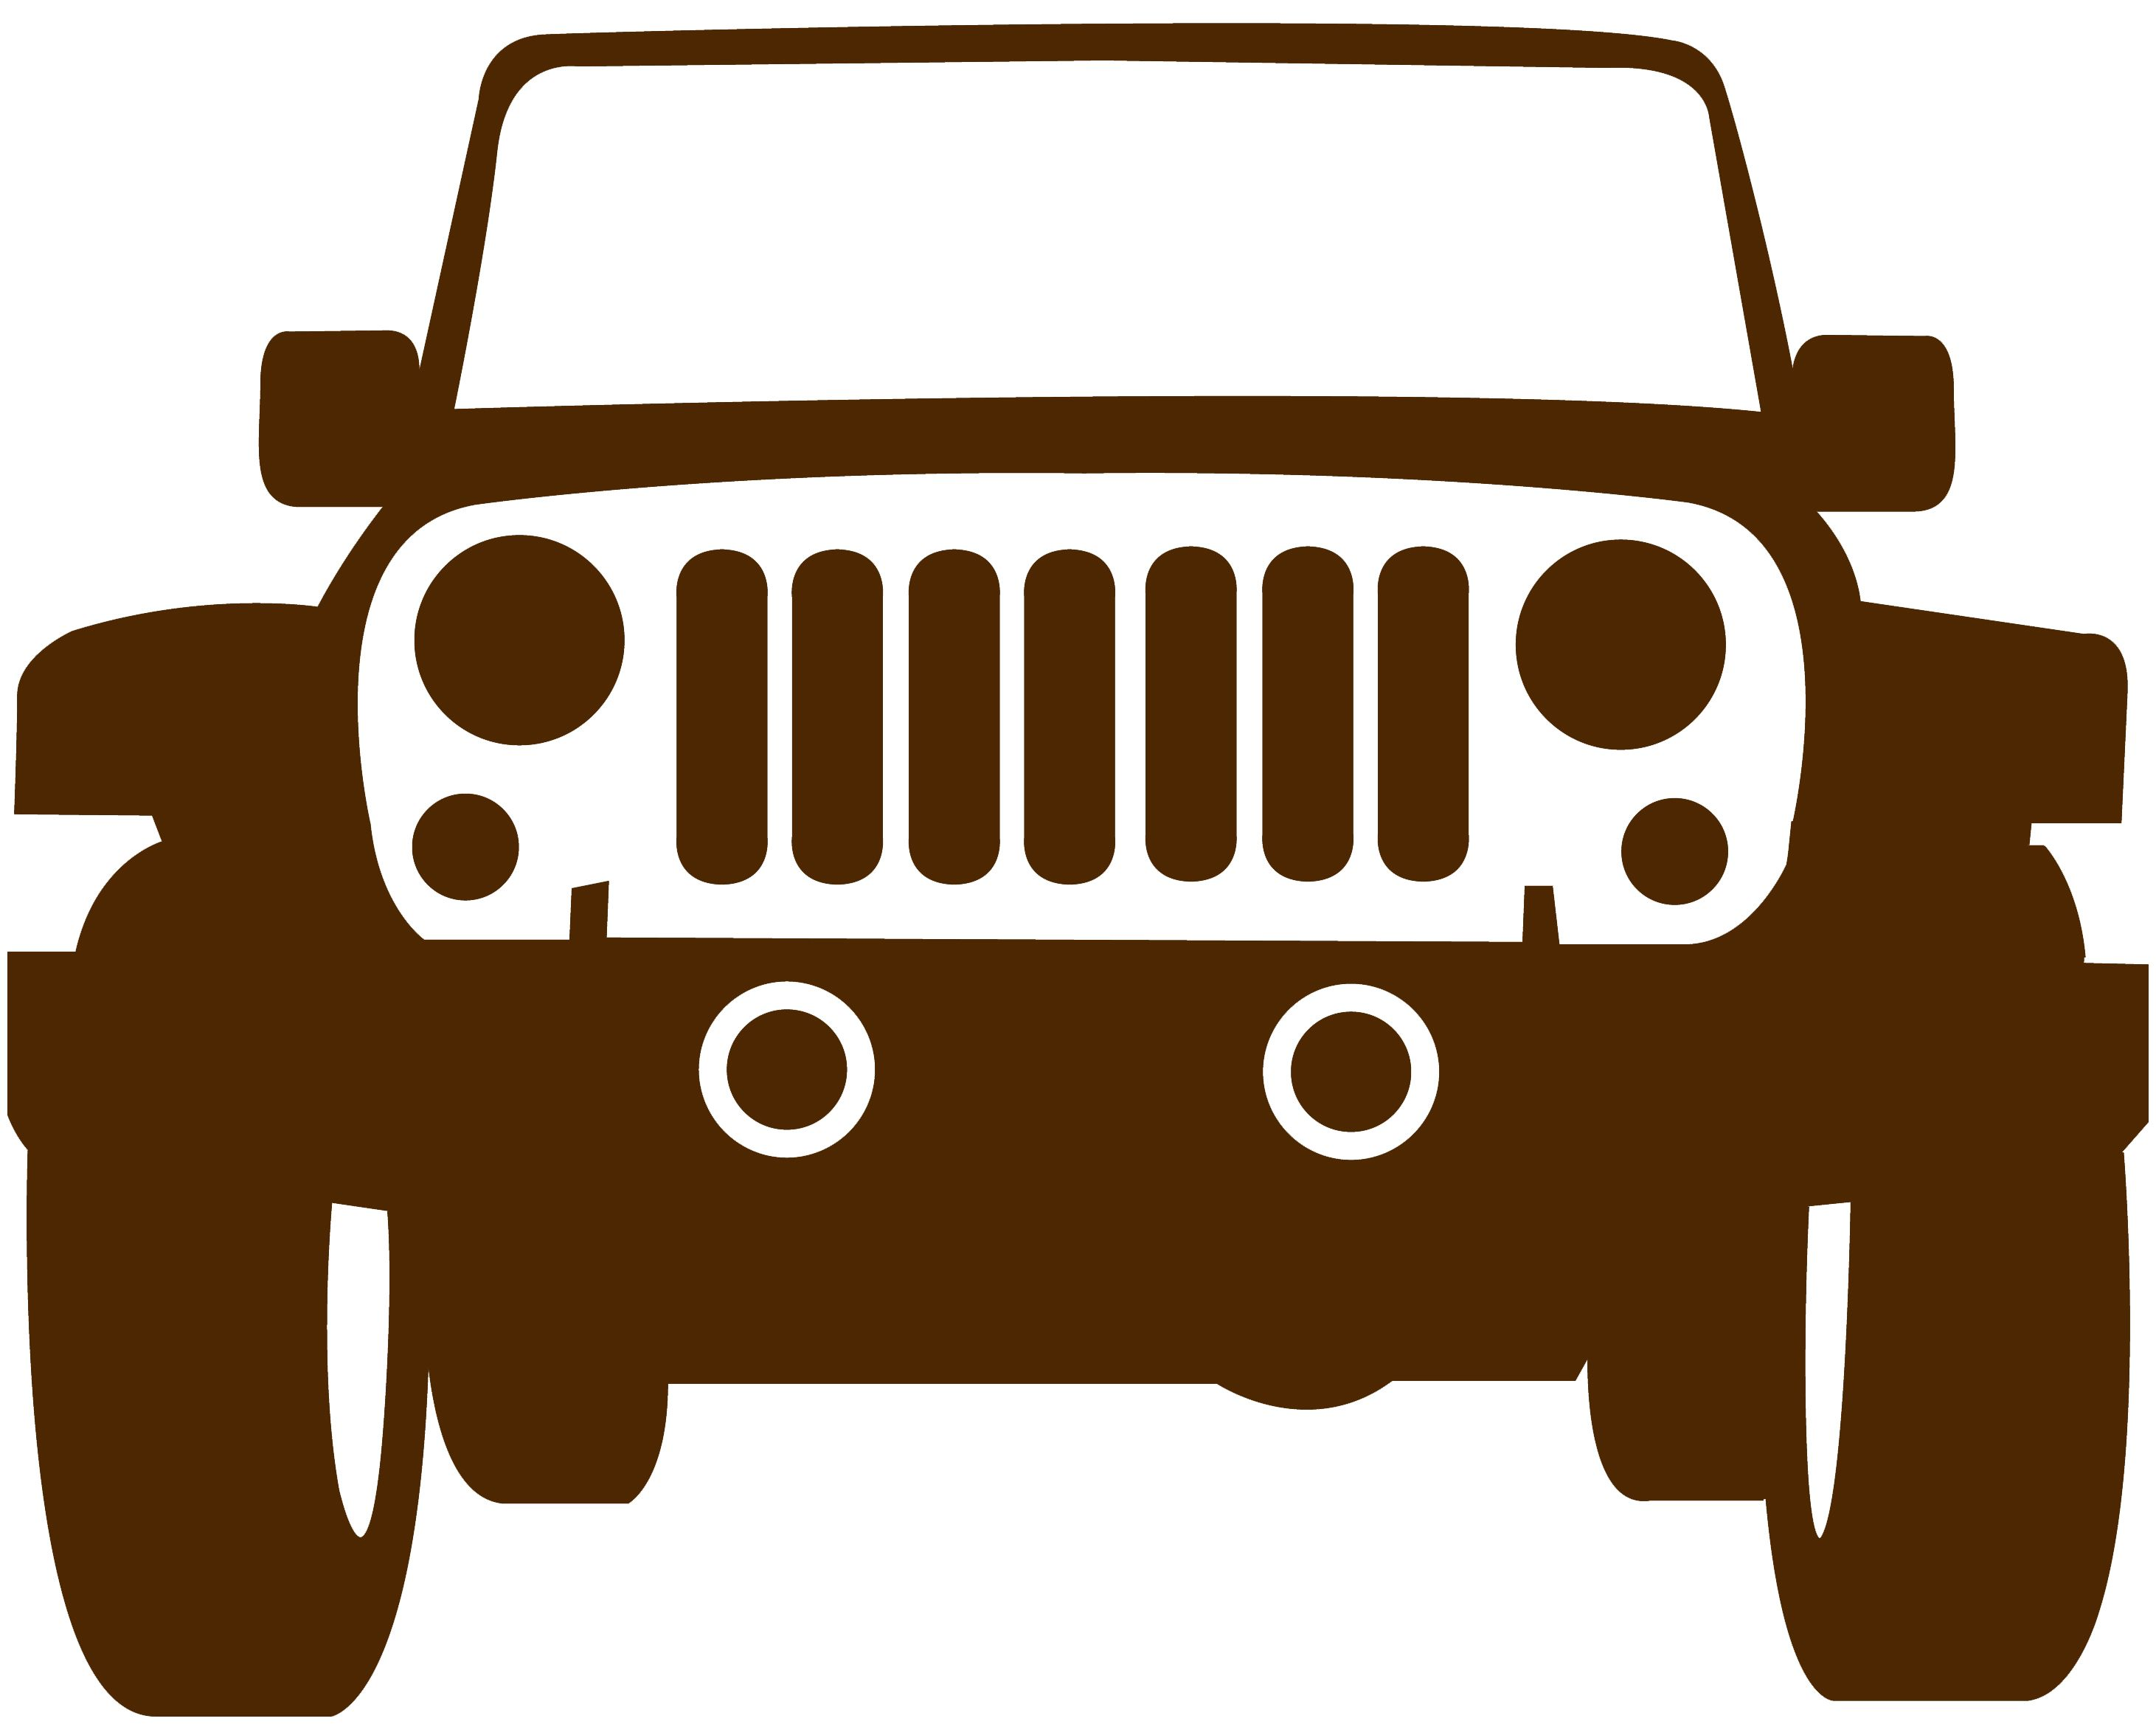 Silver jeep clipart clip art royalty free stock Muursticker Jeep, 2 formaten, 22 kleuren | Silhouettes ... clip art royalty free stock